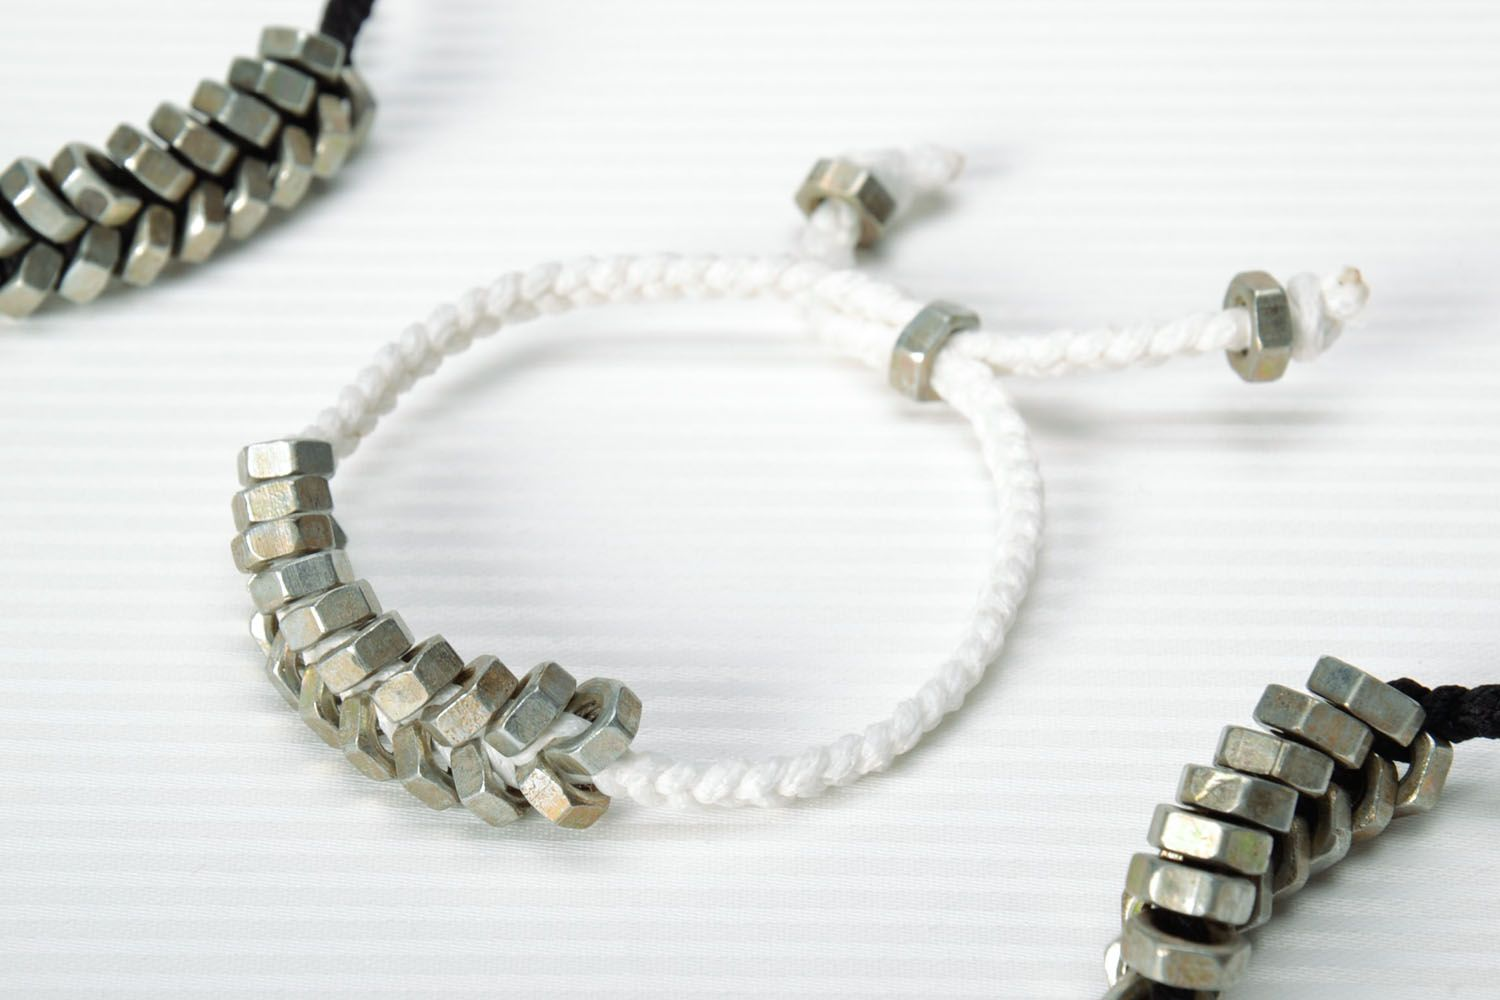 Homemade woven bracelet with metal nuts photo 1